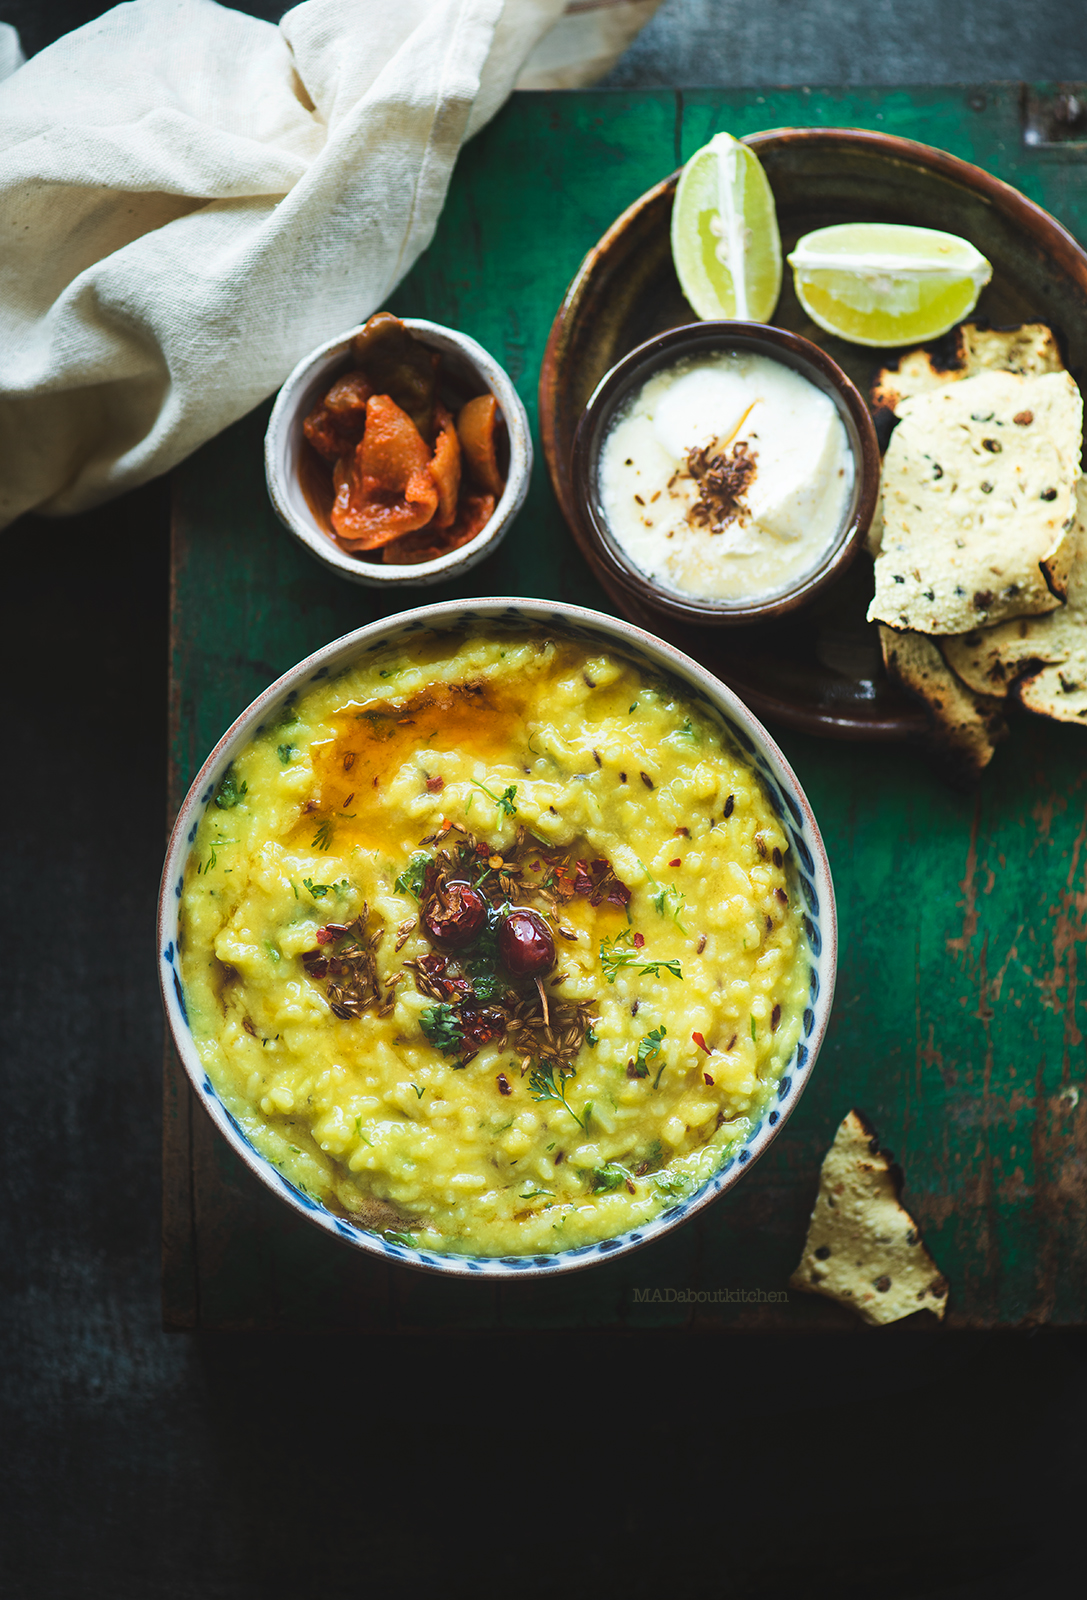 Khichdi, the most common one pot meal in India is a wholesome dish made using rice and lentils. Khichdi is the comfort food that is easy and healthy.